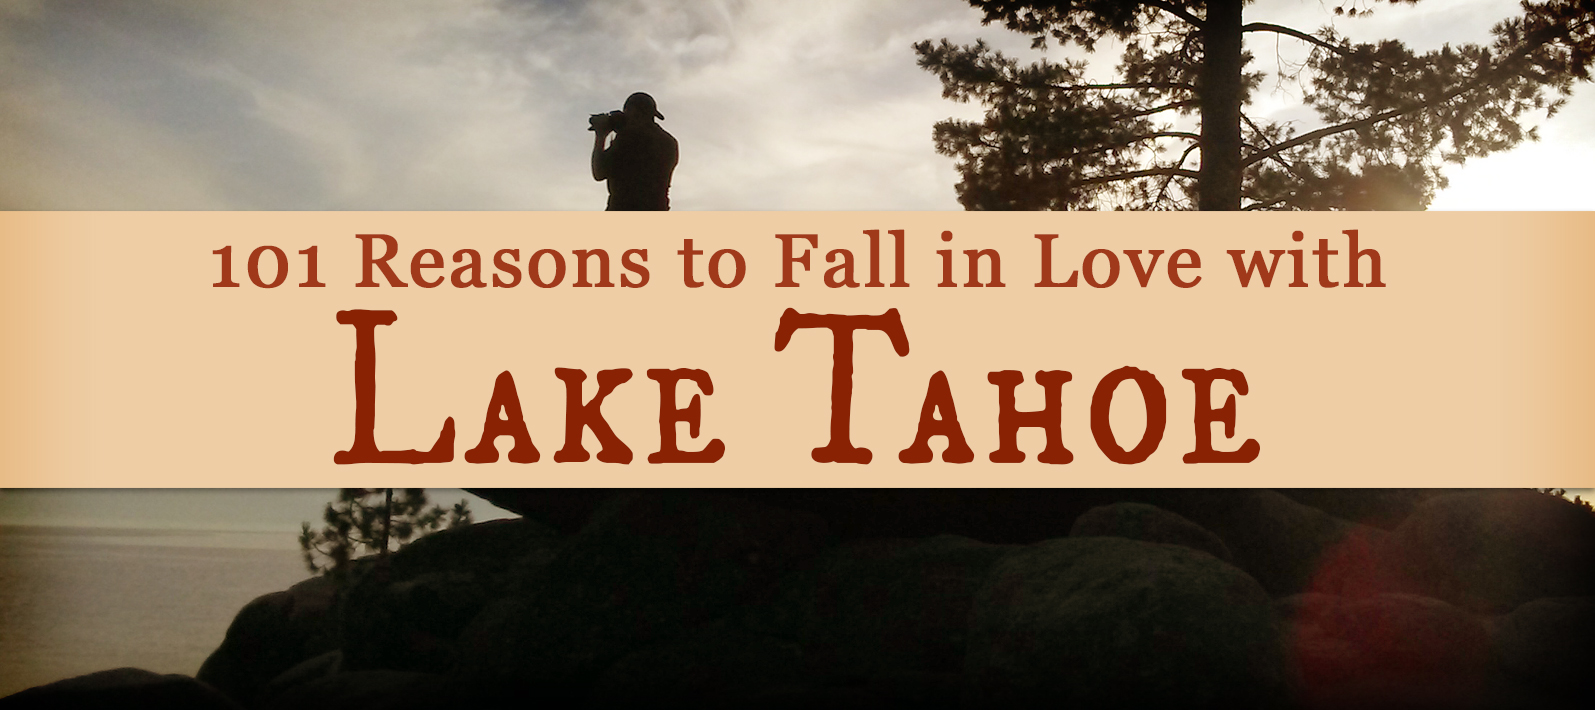 "101 Reasons to Fall in Love with Lake Tahoe: Had a *glorious* week at Lake Tahoe. Such breathtaking scenery! And when I say ""breathtaking,"" I do so with all the words my thesaurus can list in mind: spectacular, awe-inspiring, magnificent, sensational, wondrous, and all the rest."